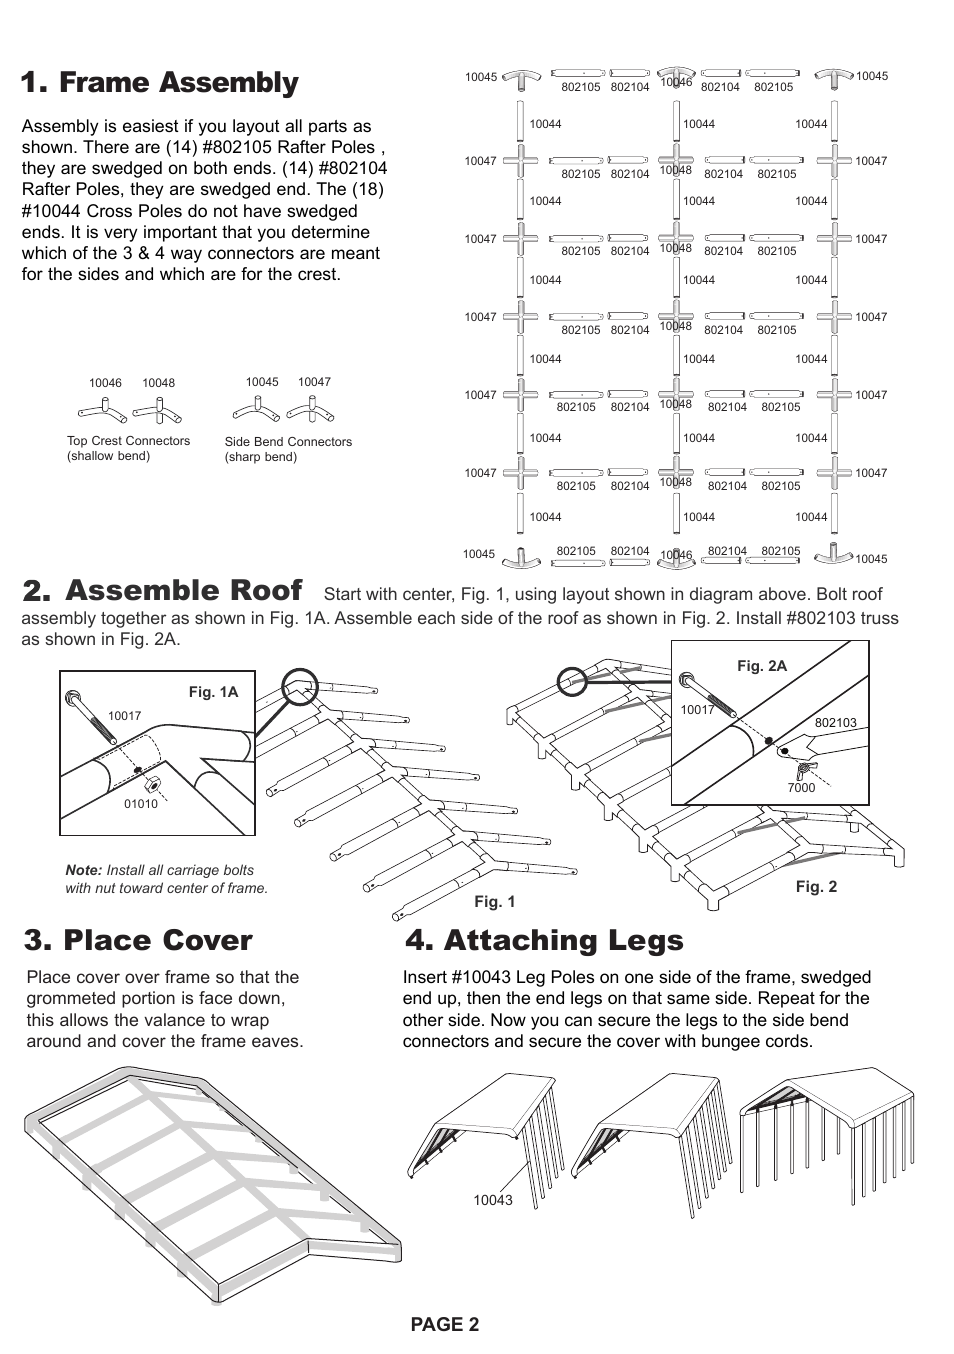 Frame assembly 4. attaching legs 3. place cover Assemble roof Page 2 | ShelterLogic 26764 18 x 40 Super Max Canopy User Manual | Page 2 / 4  sc 1 st  manualsdir.com & Frame assembly 4. attaching legs 3. place cover Assemble roof ...